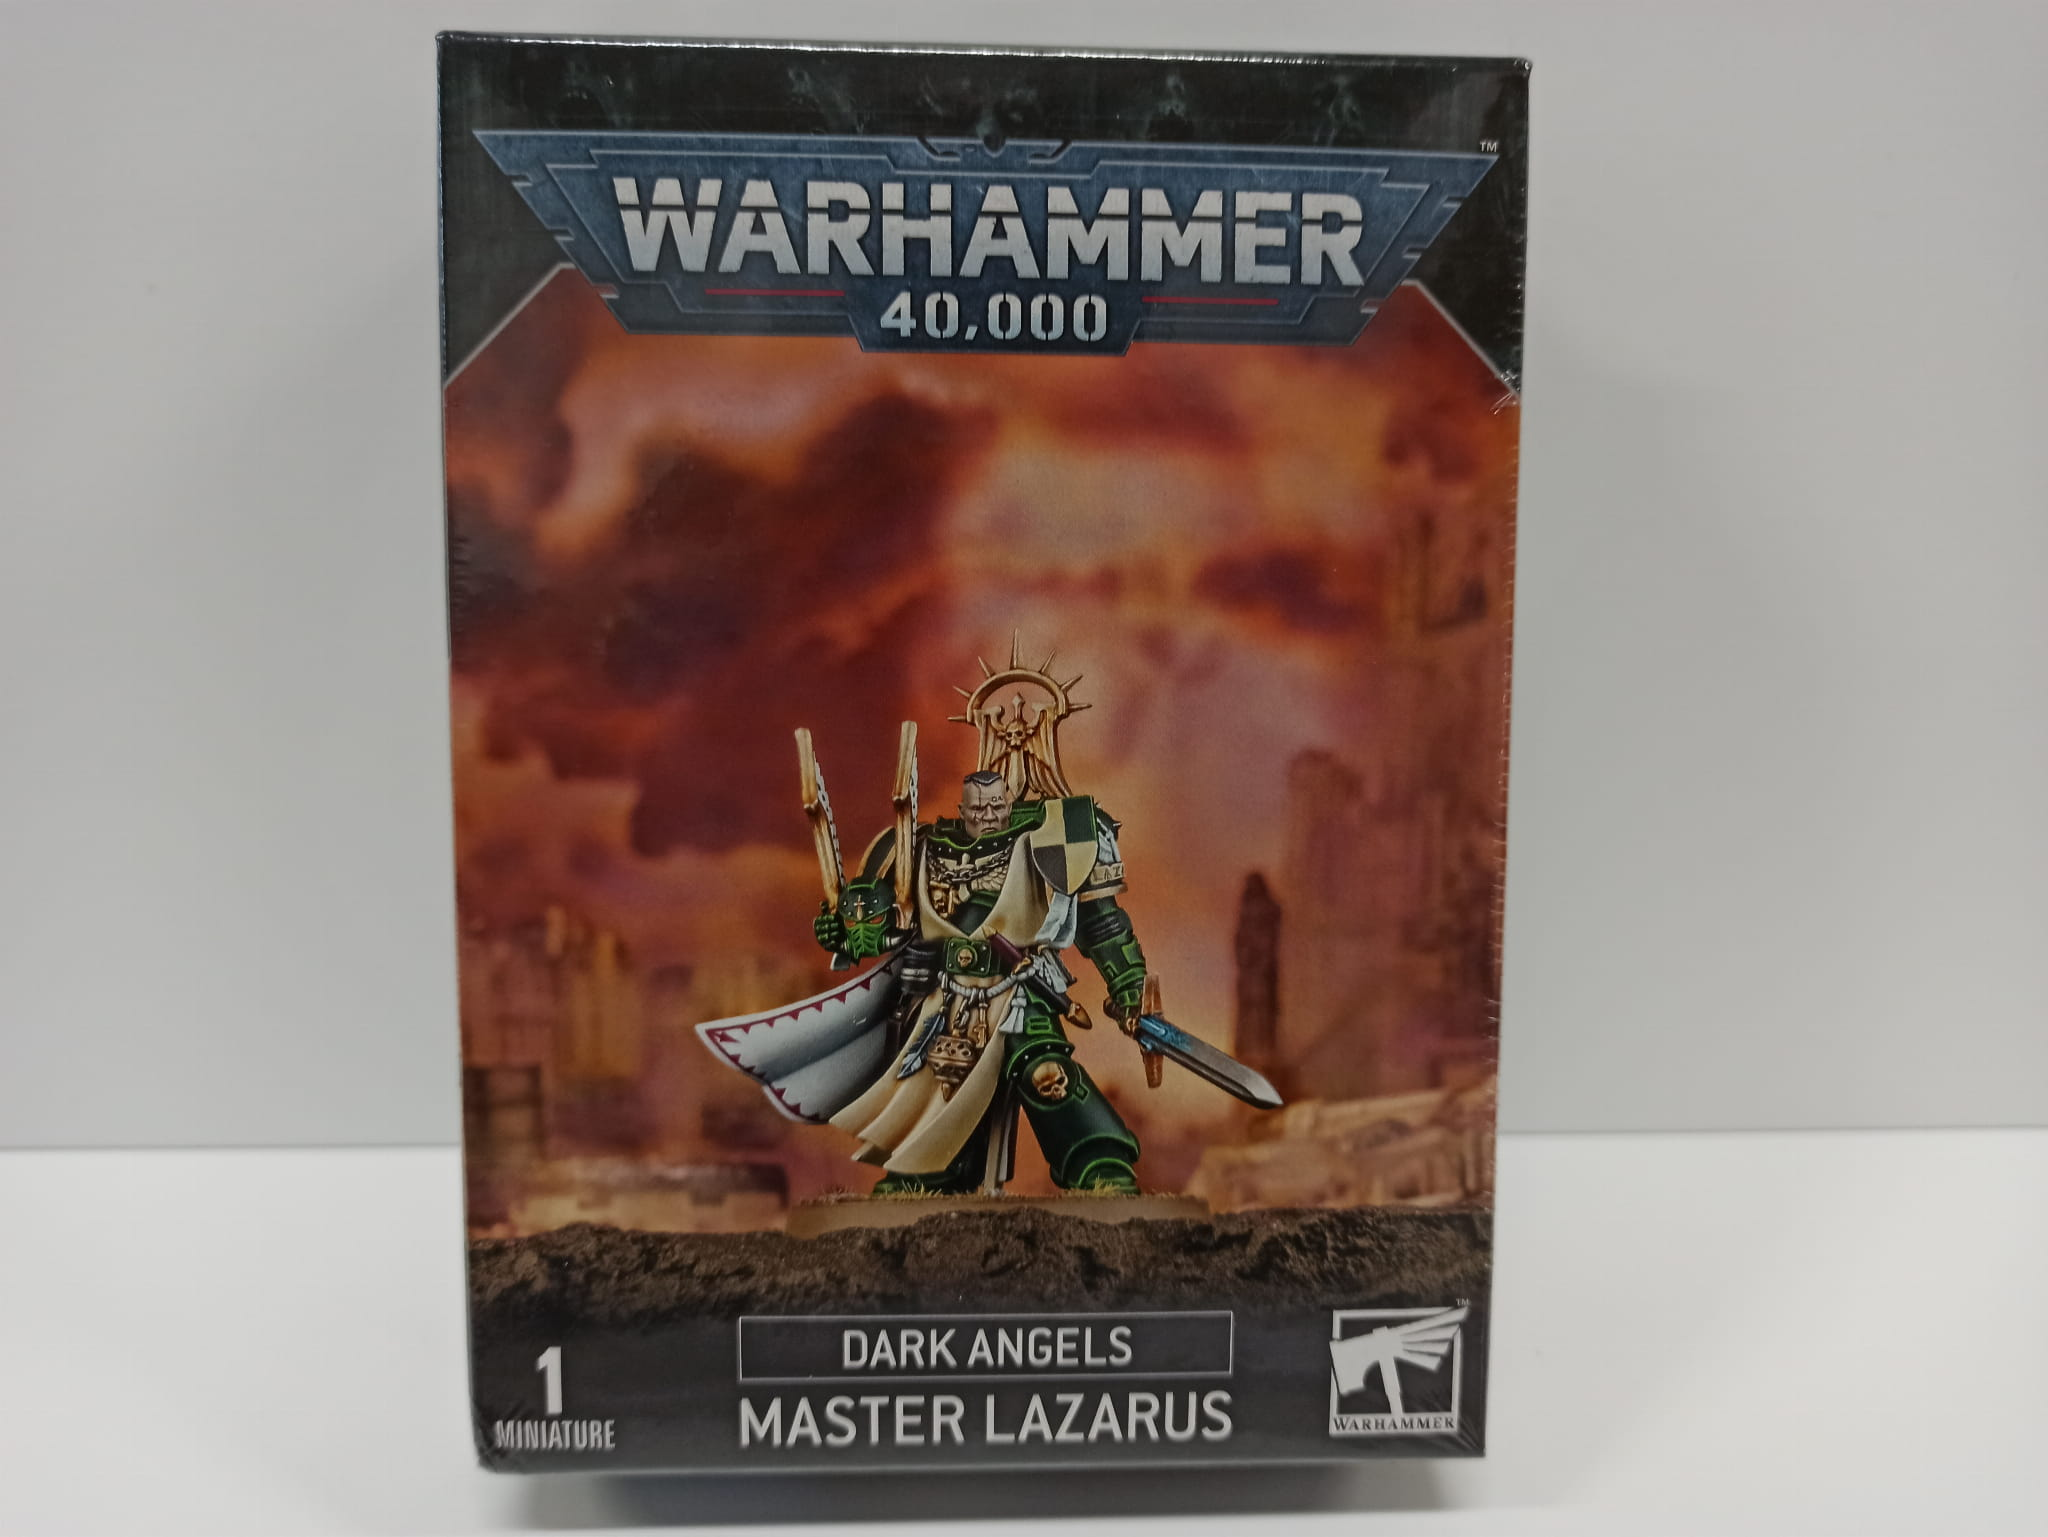 Warhammer 40,000: Dark Angels Master Lazarus (9th edition)